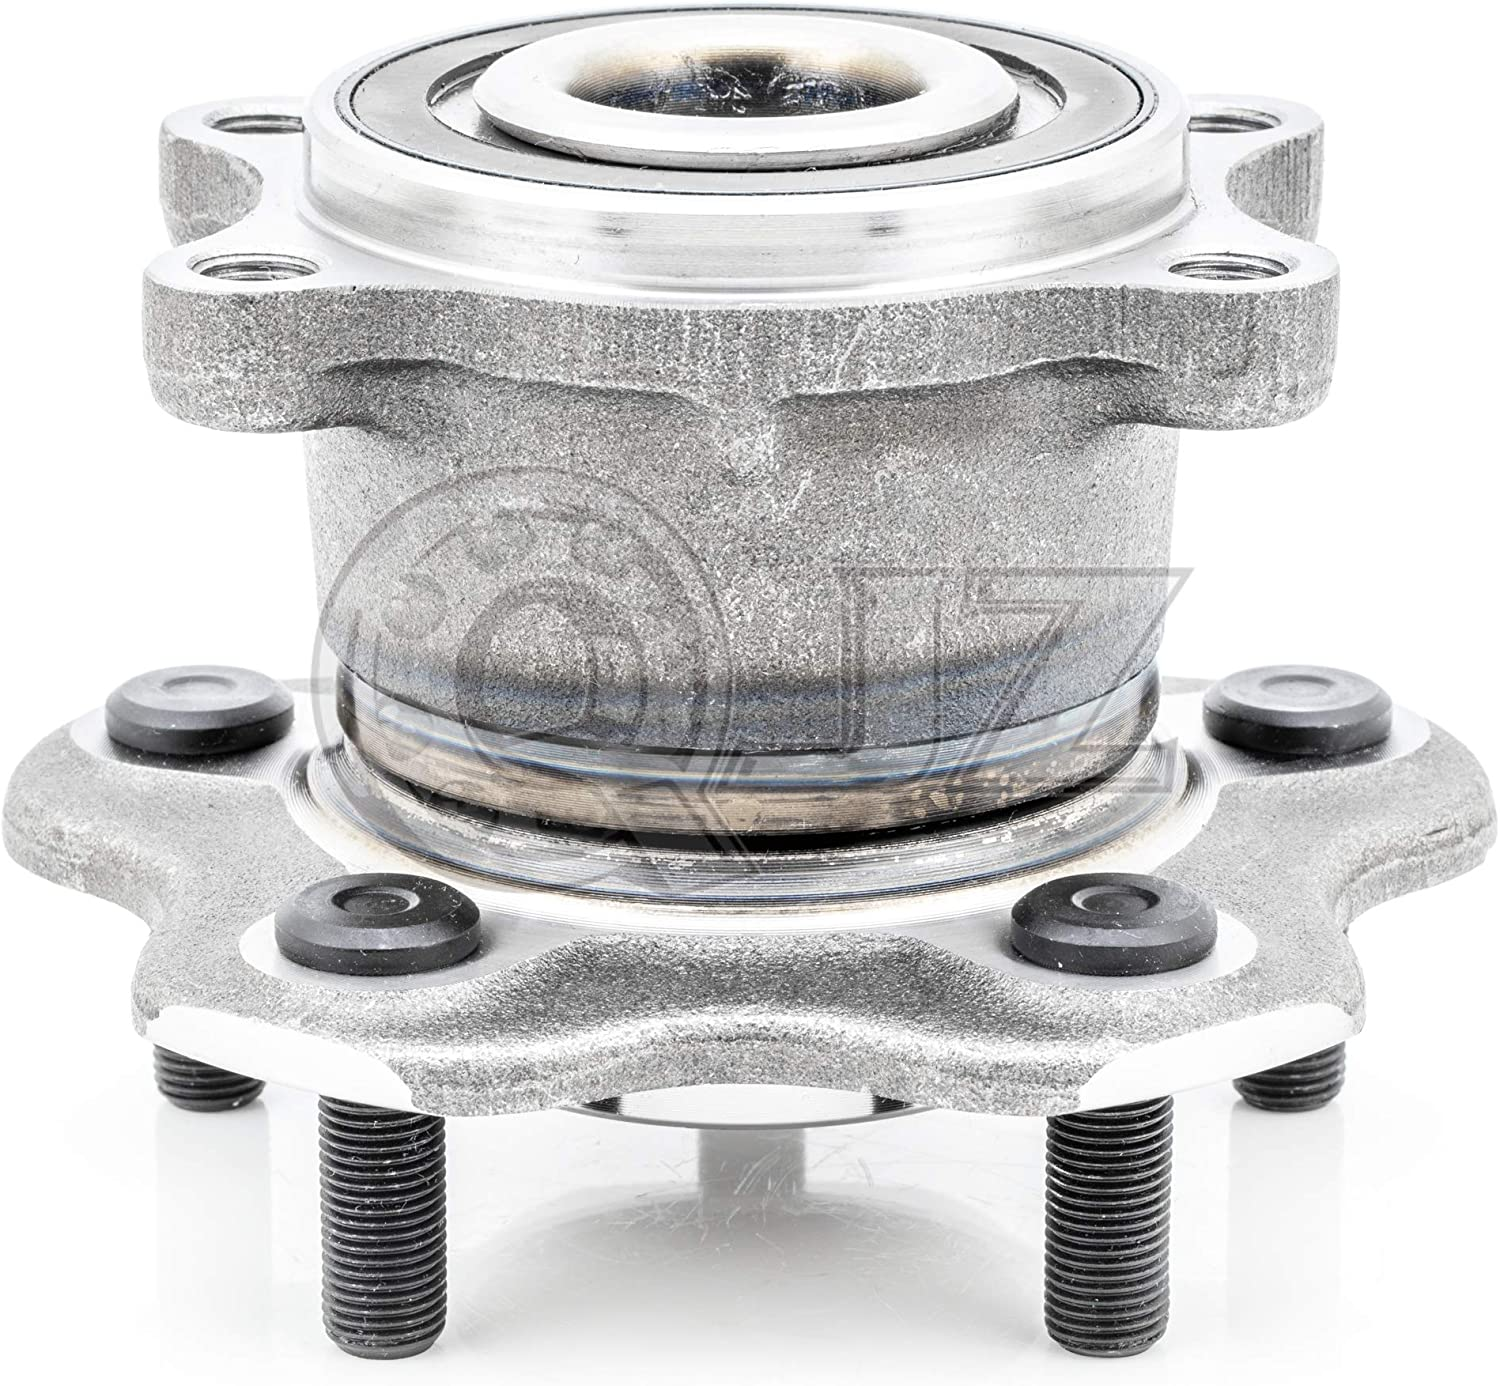 FWD ONLY REAR Wheel Hub Bearing Assembly for 2007-2018 Nissan Altima 2-Pack//Pair FWD 512388 2014-2019 Infiniti QX60 2009-2019 Maxima FWD 2013-2019 Pathfinder 2015-2019 Murano